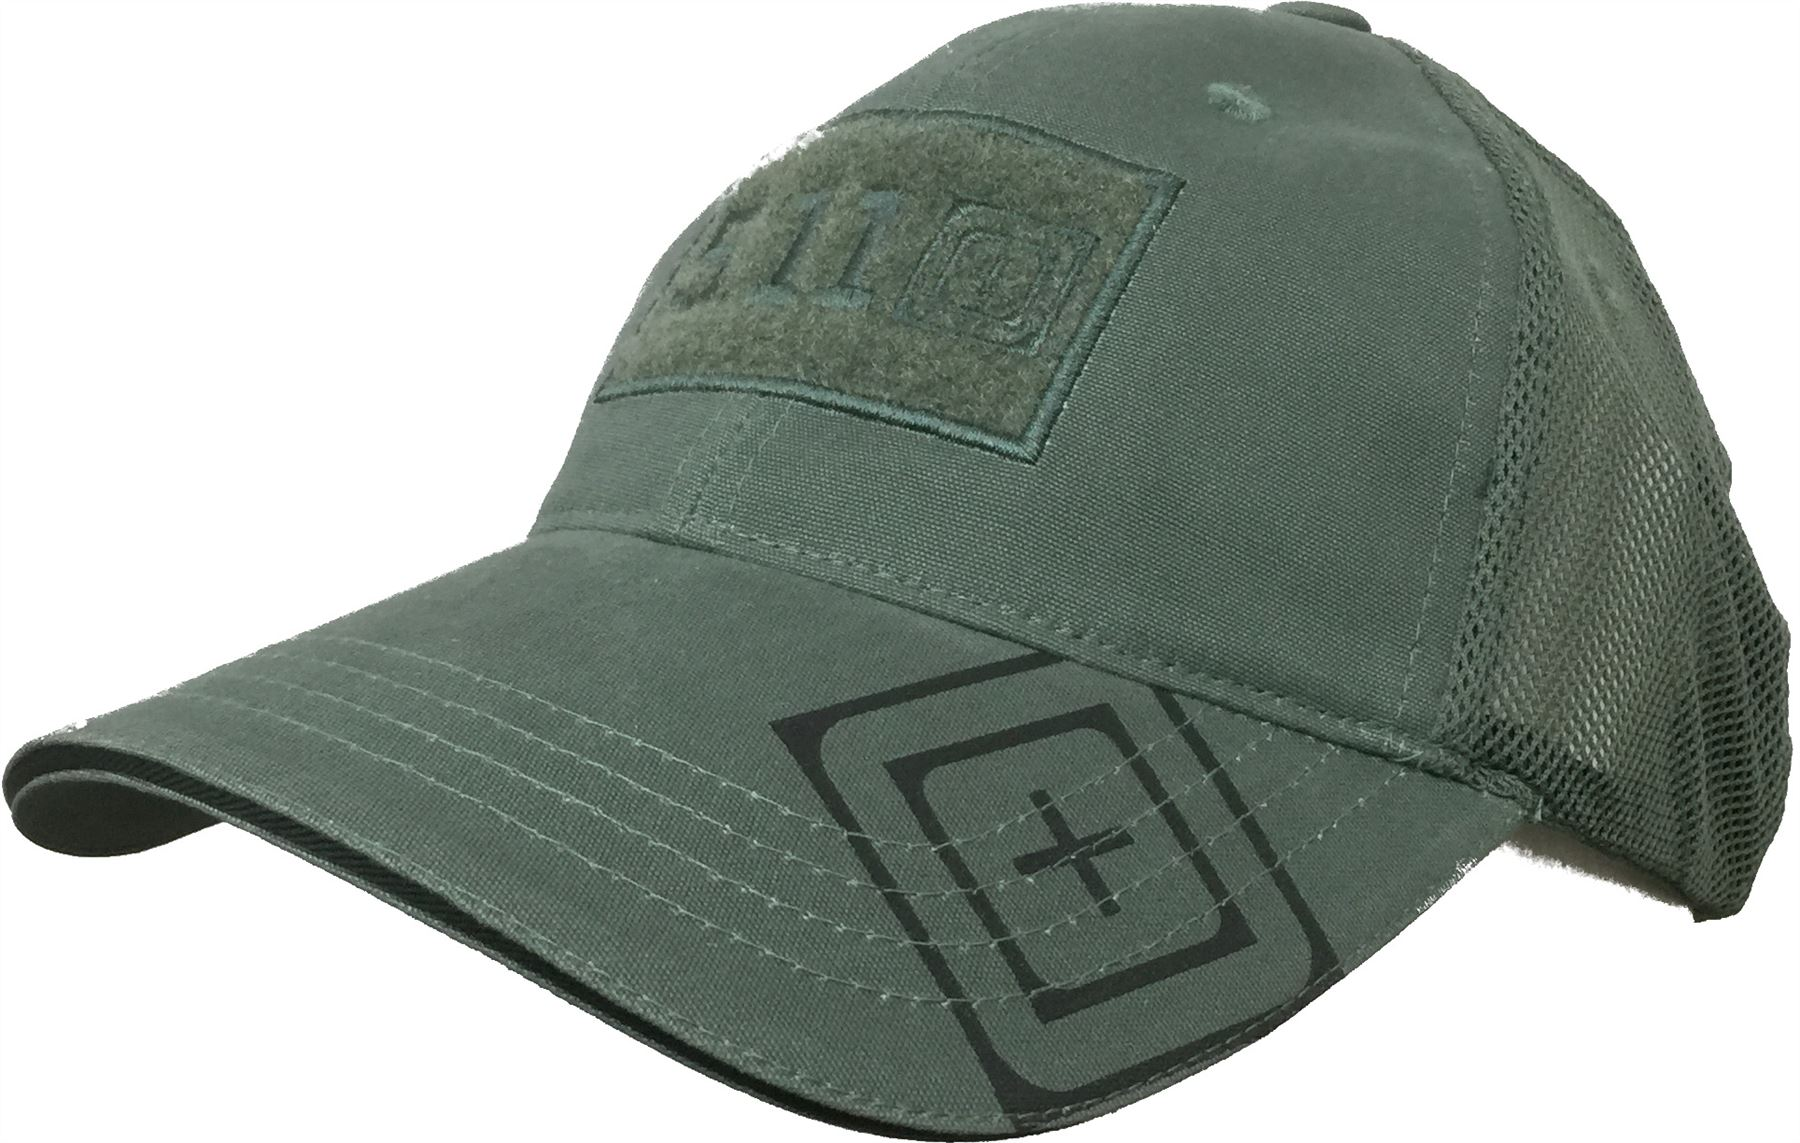 5 11 big selection of styles colours baseball cap